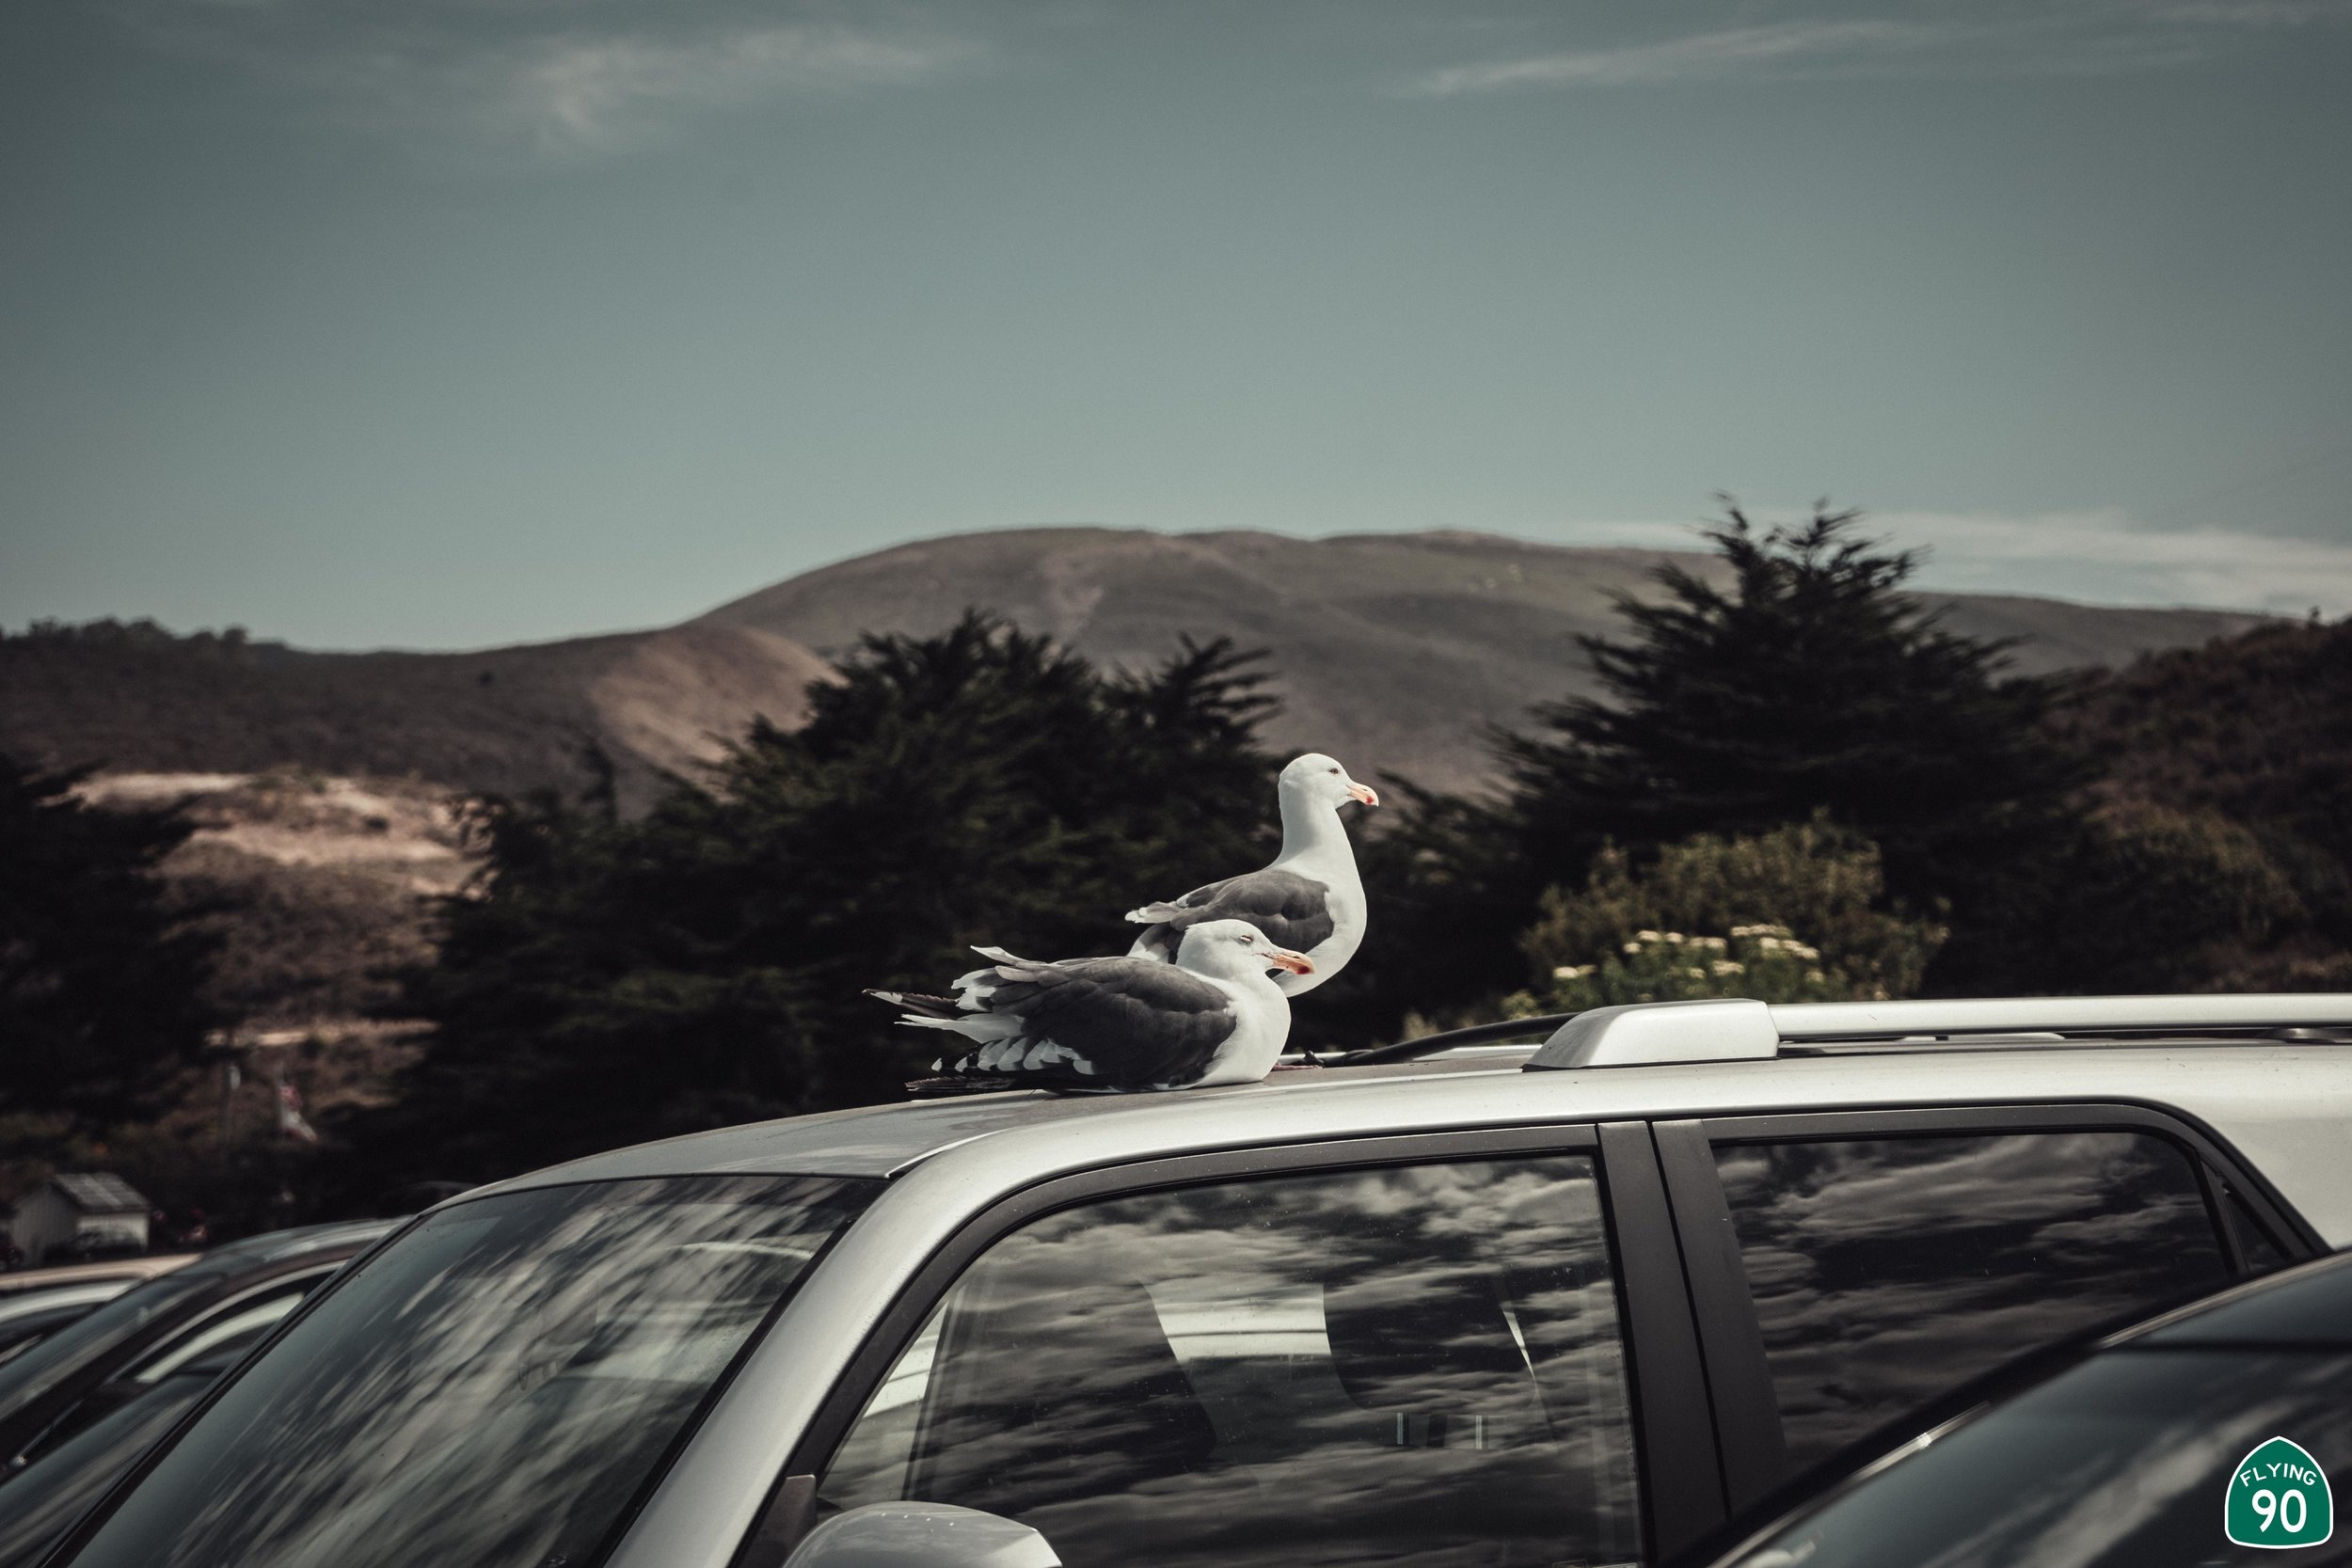 There was so many people, the Seagulls had to find a new place to sit..